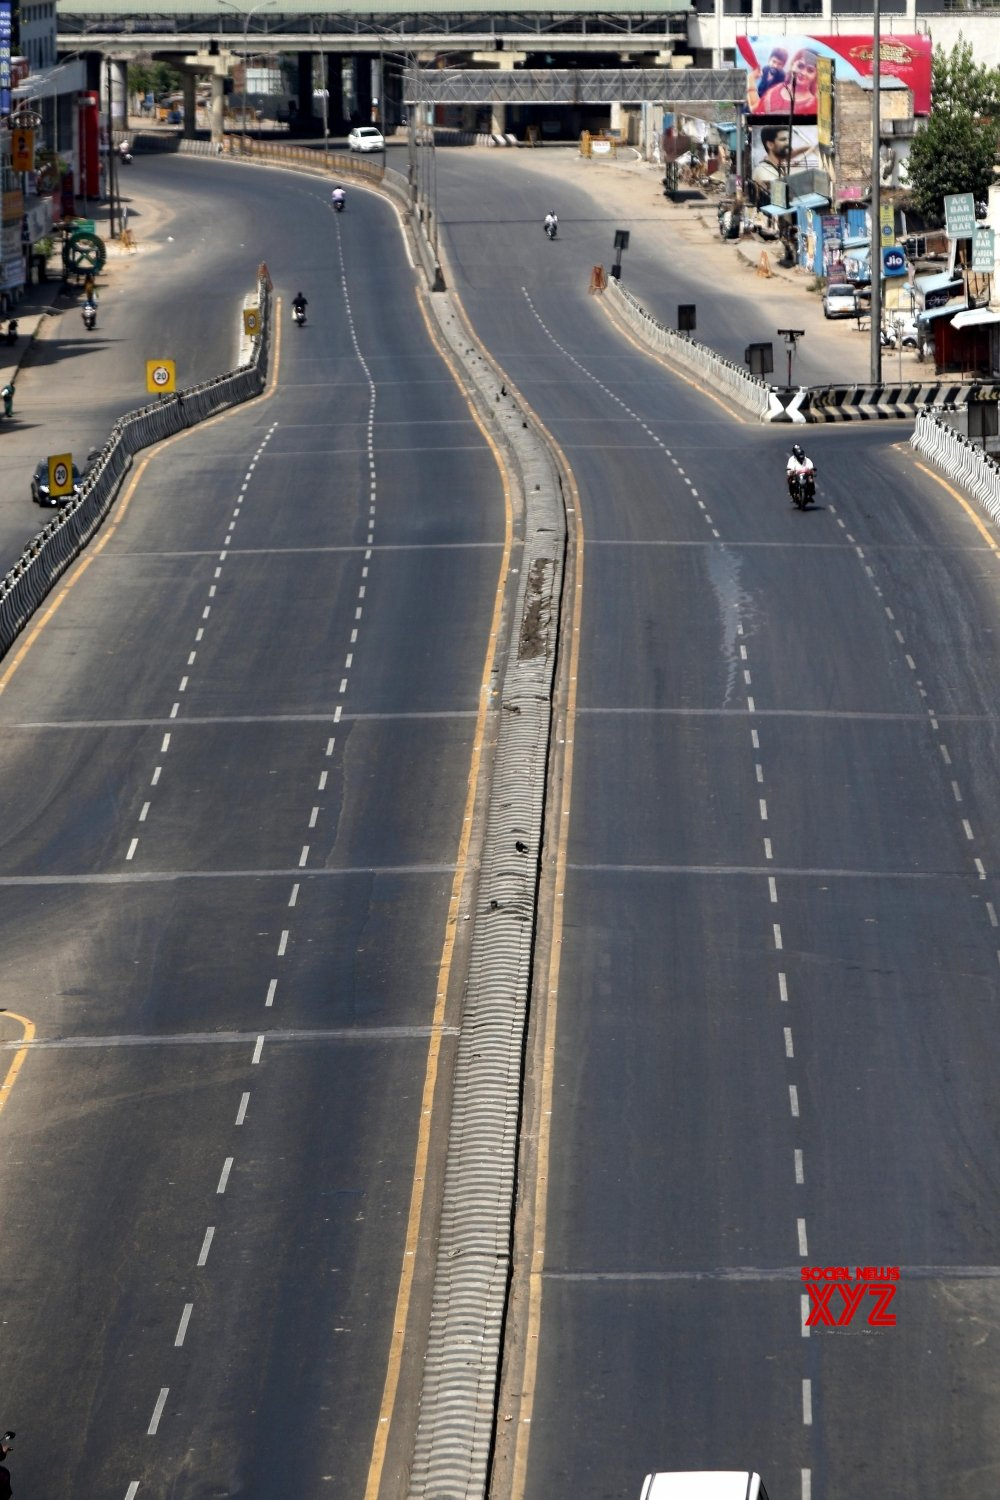 Chennai: City comes to a standtill during 21 - day lockdown #Gallery